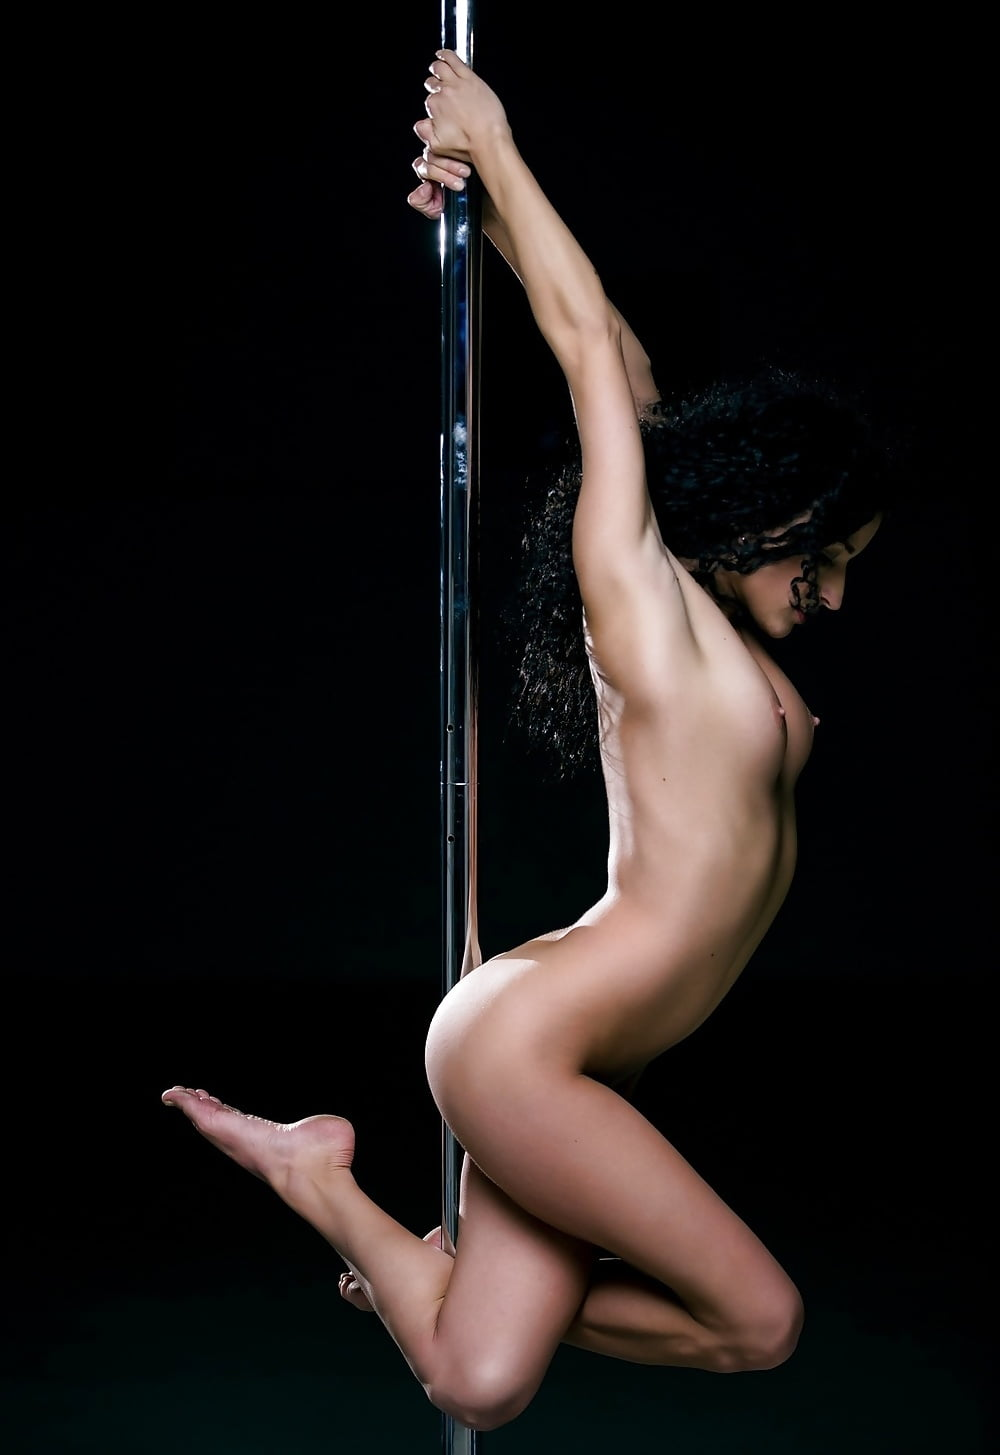 Hottest nude pole dancers who